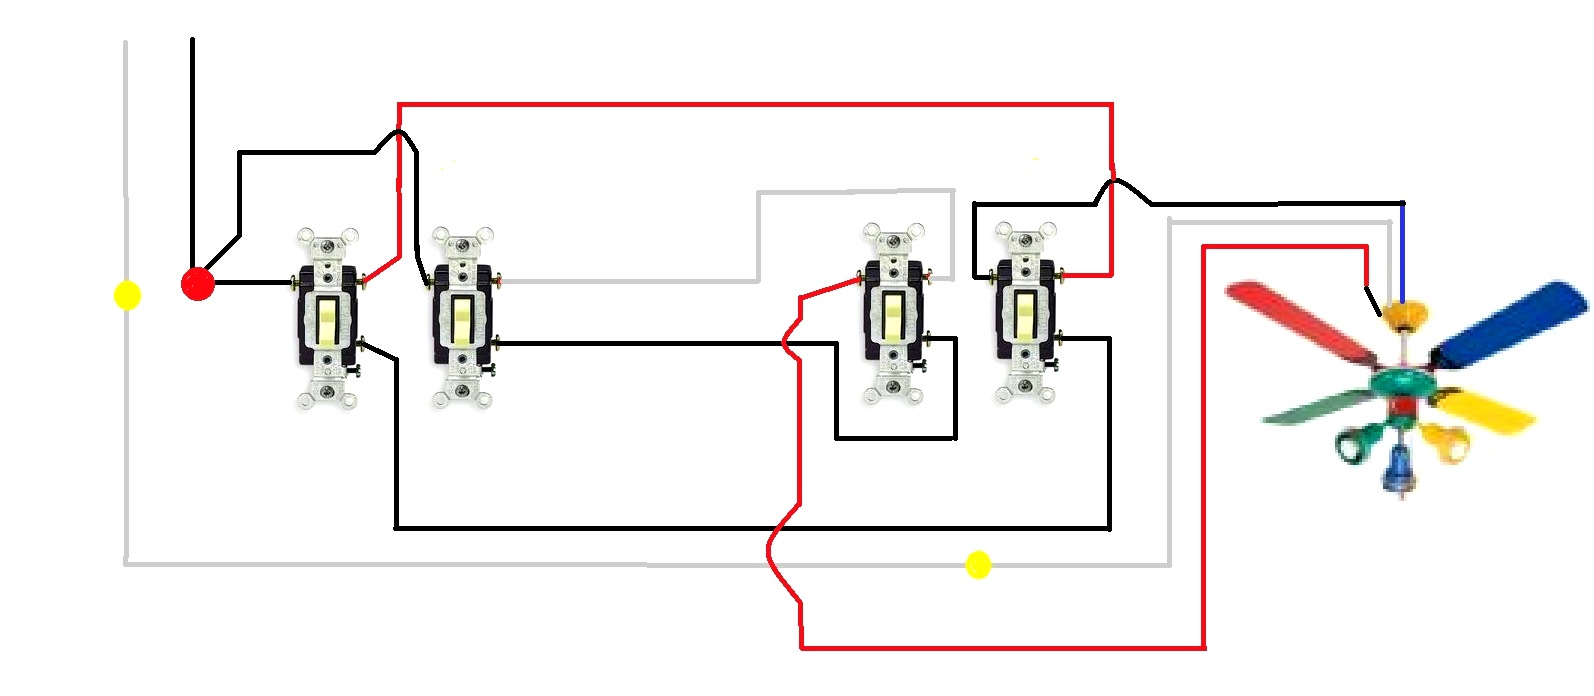 Zv 6198 Light Switch Wiring Diagram Together With Electric Fan Relay Diagram Schematic Wiring